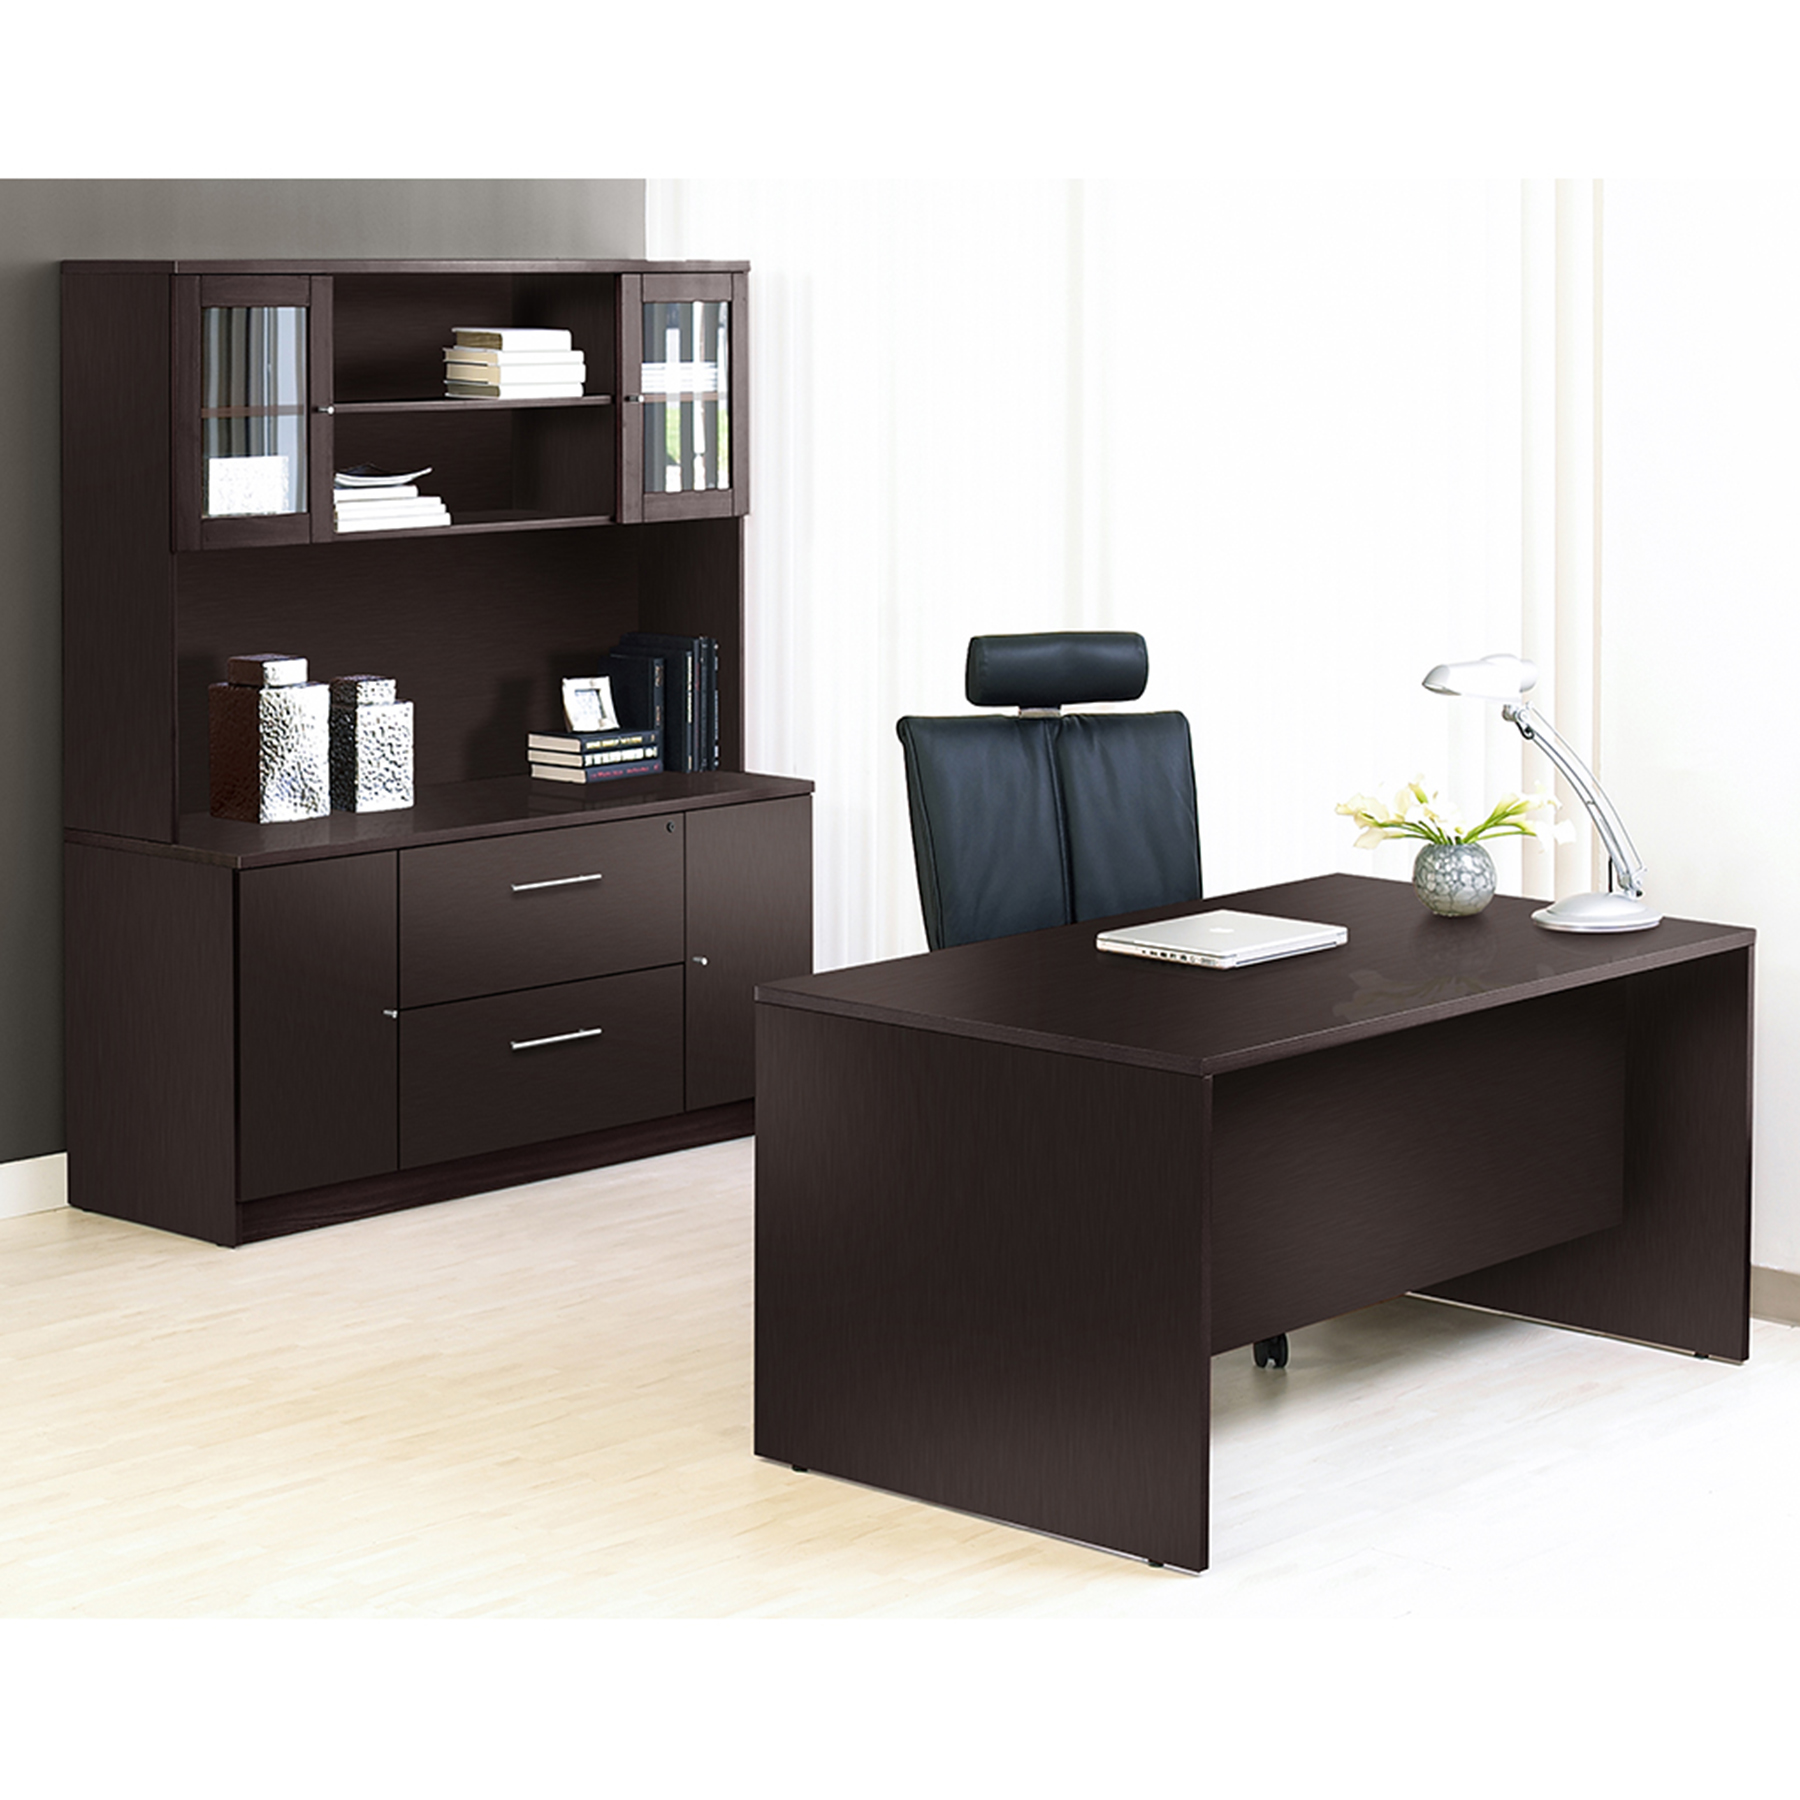 Ordinaire 100 Series Executive Office Desk   Credenza, Mobile Pedestal, Hutch    UNIQ 1C100009M ...